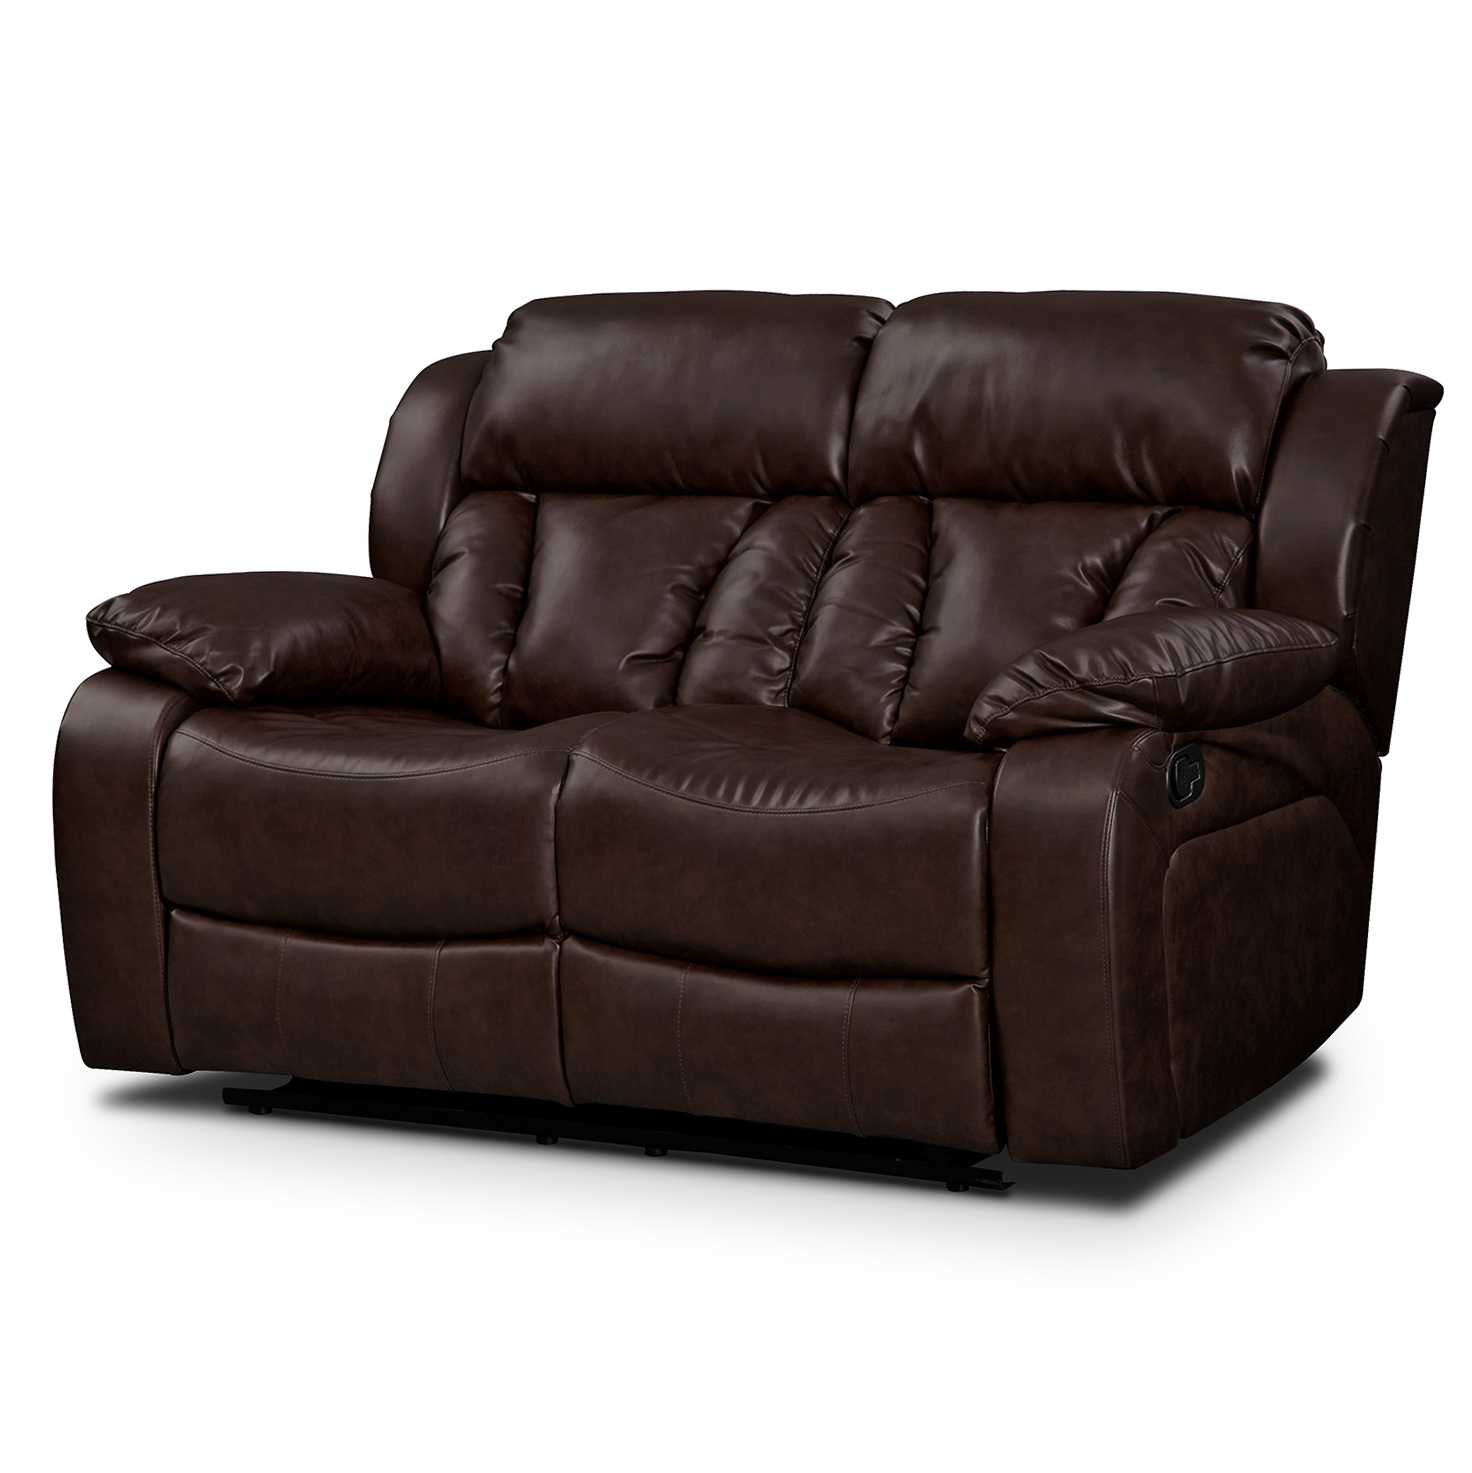 Permalink to Leather Reclining Sofa And Loveseat